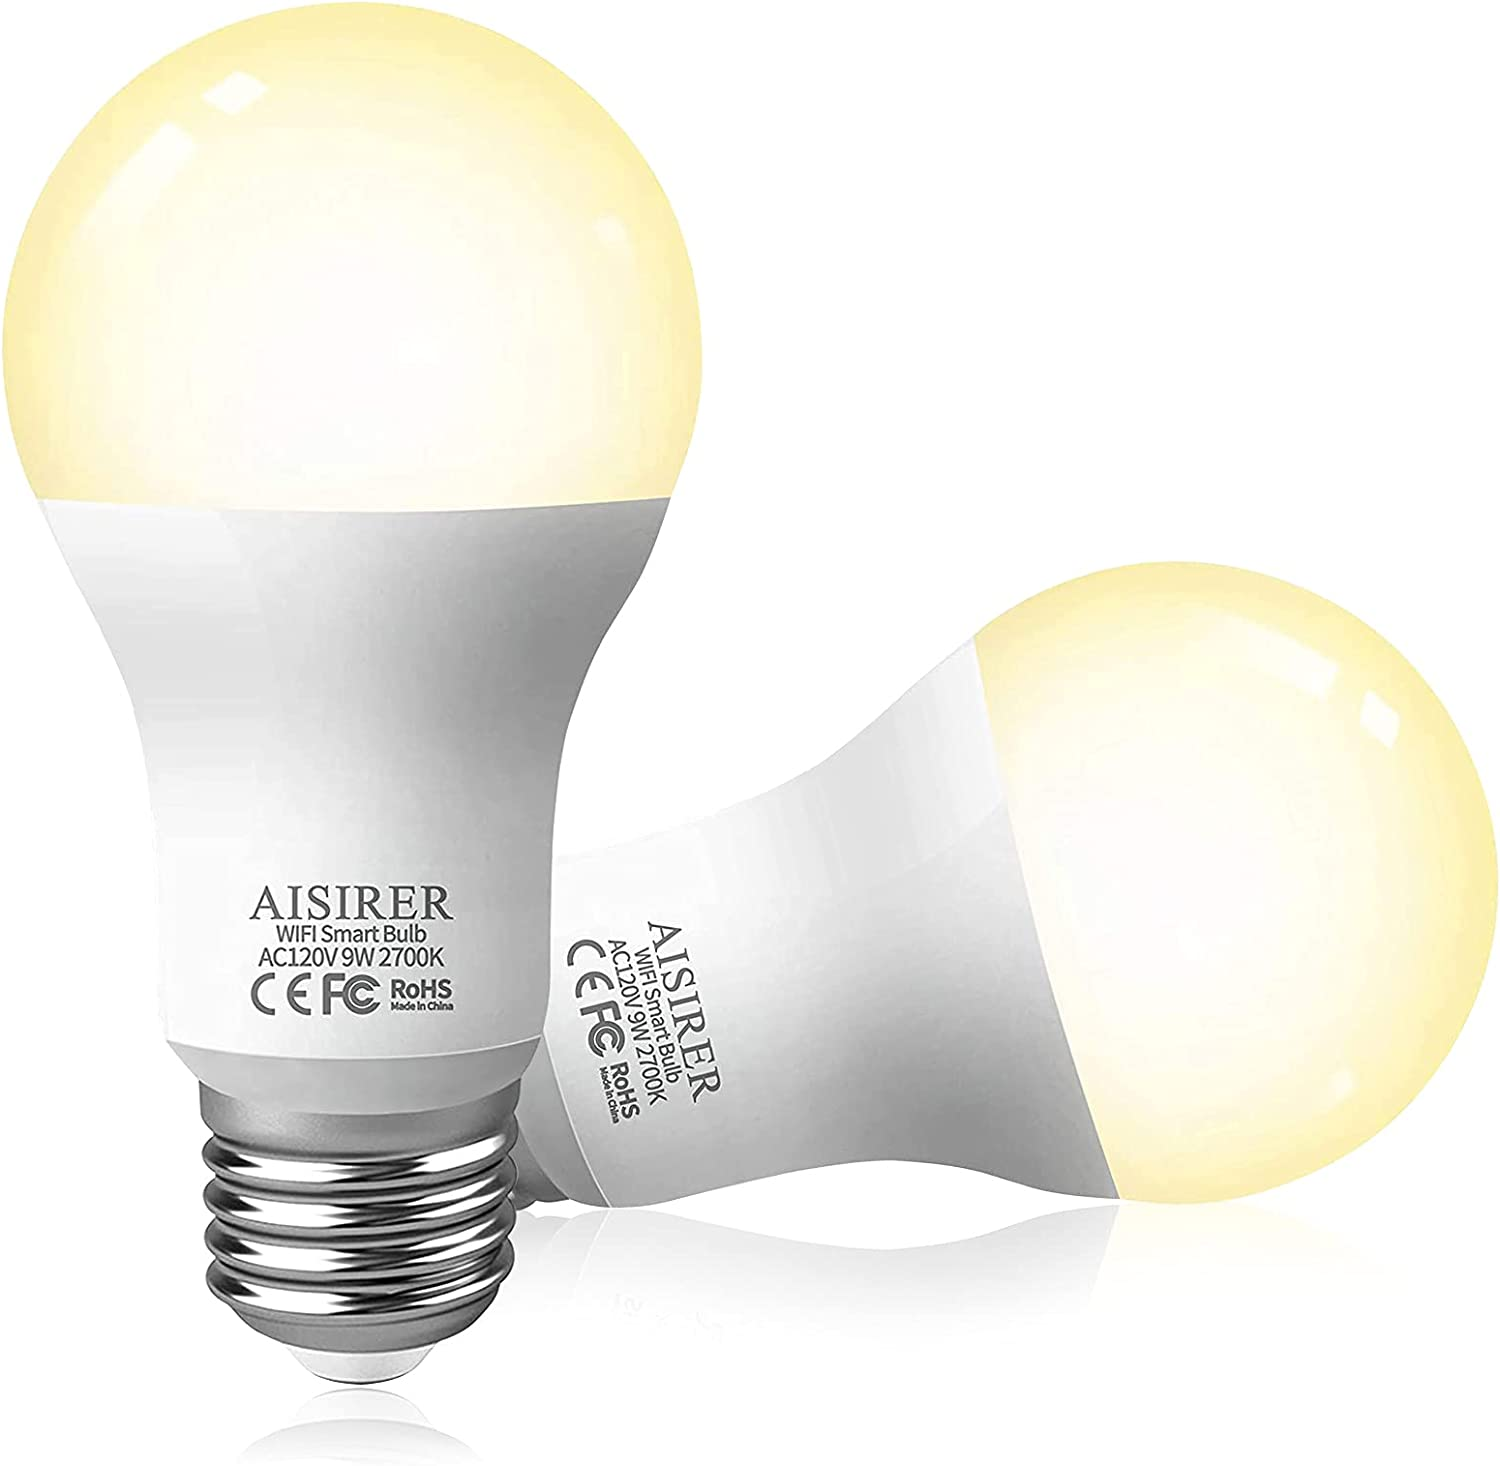 Smart Light Bulb 16.16GHz WiFi LED Bulbs 16 Watts 16LM Compatible with  Amazon Alexa Echo, Google Home Assistant and Siri Dimmable Warm Light 16700K  No ...